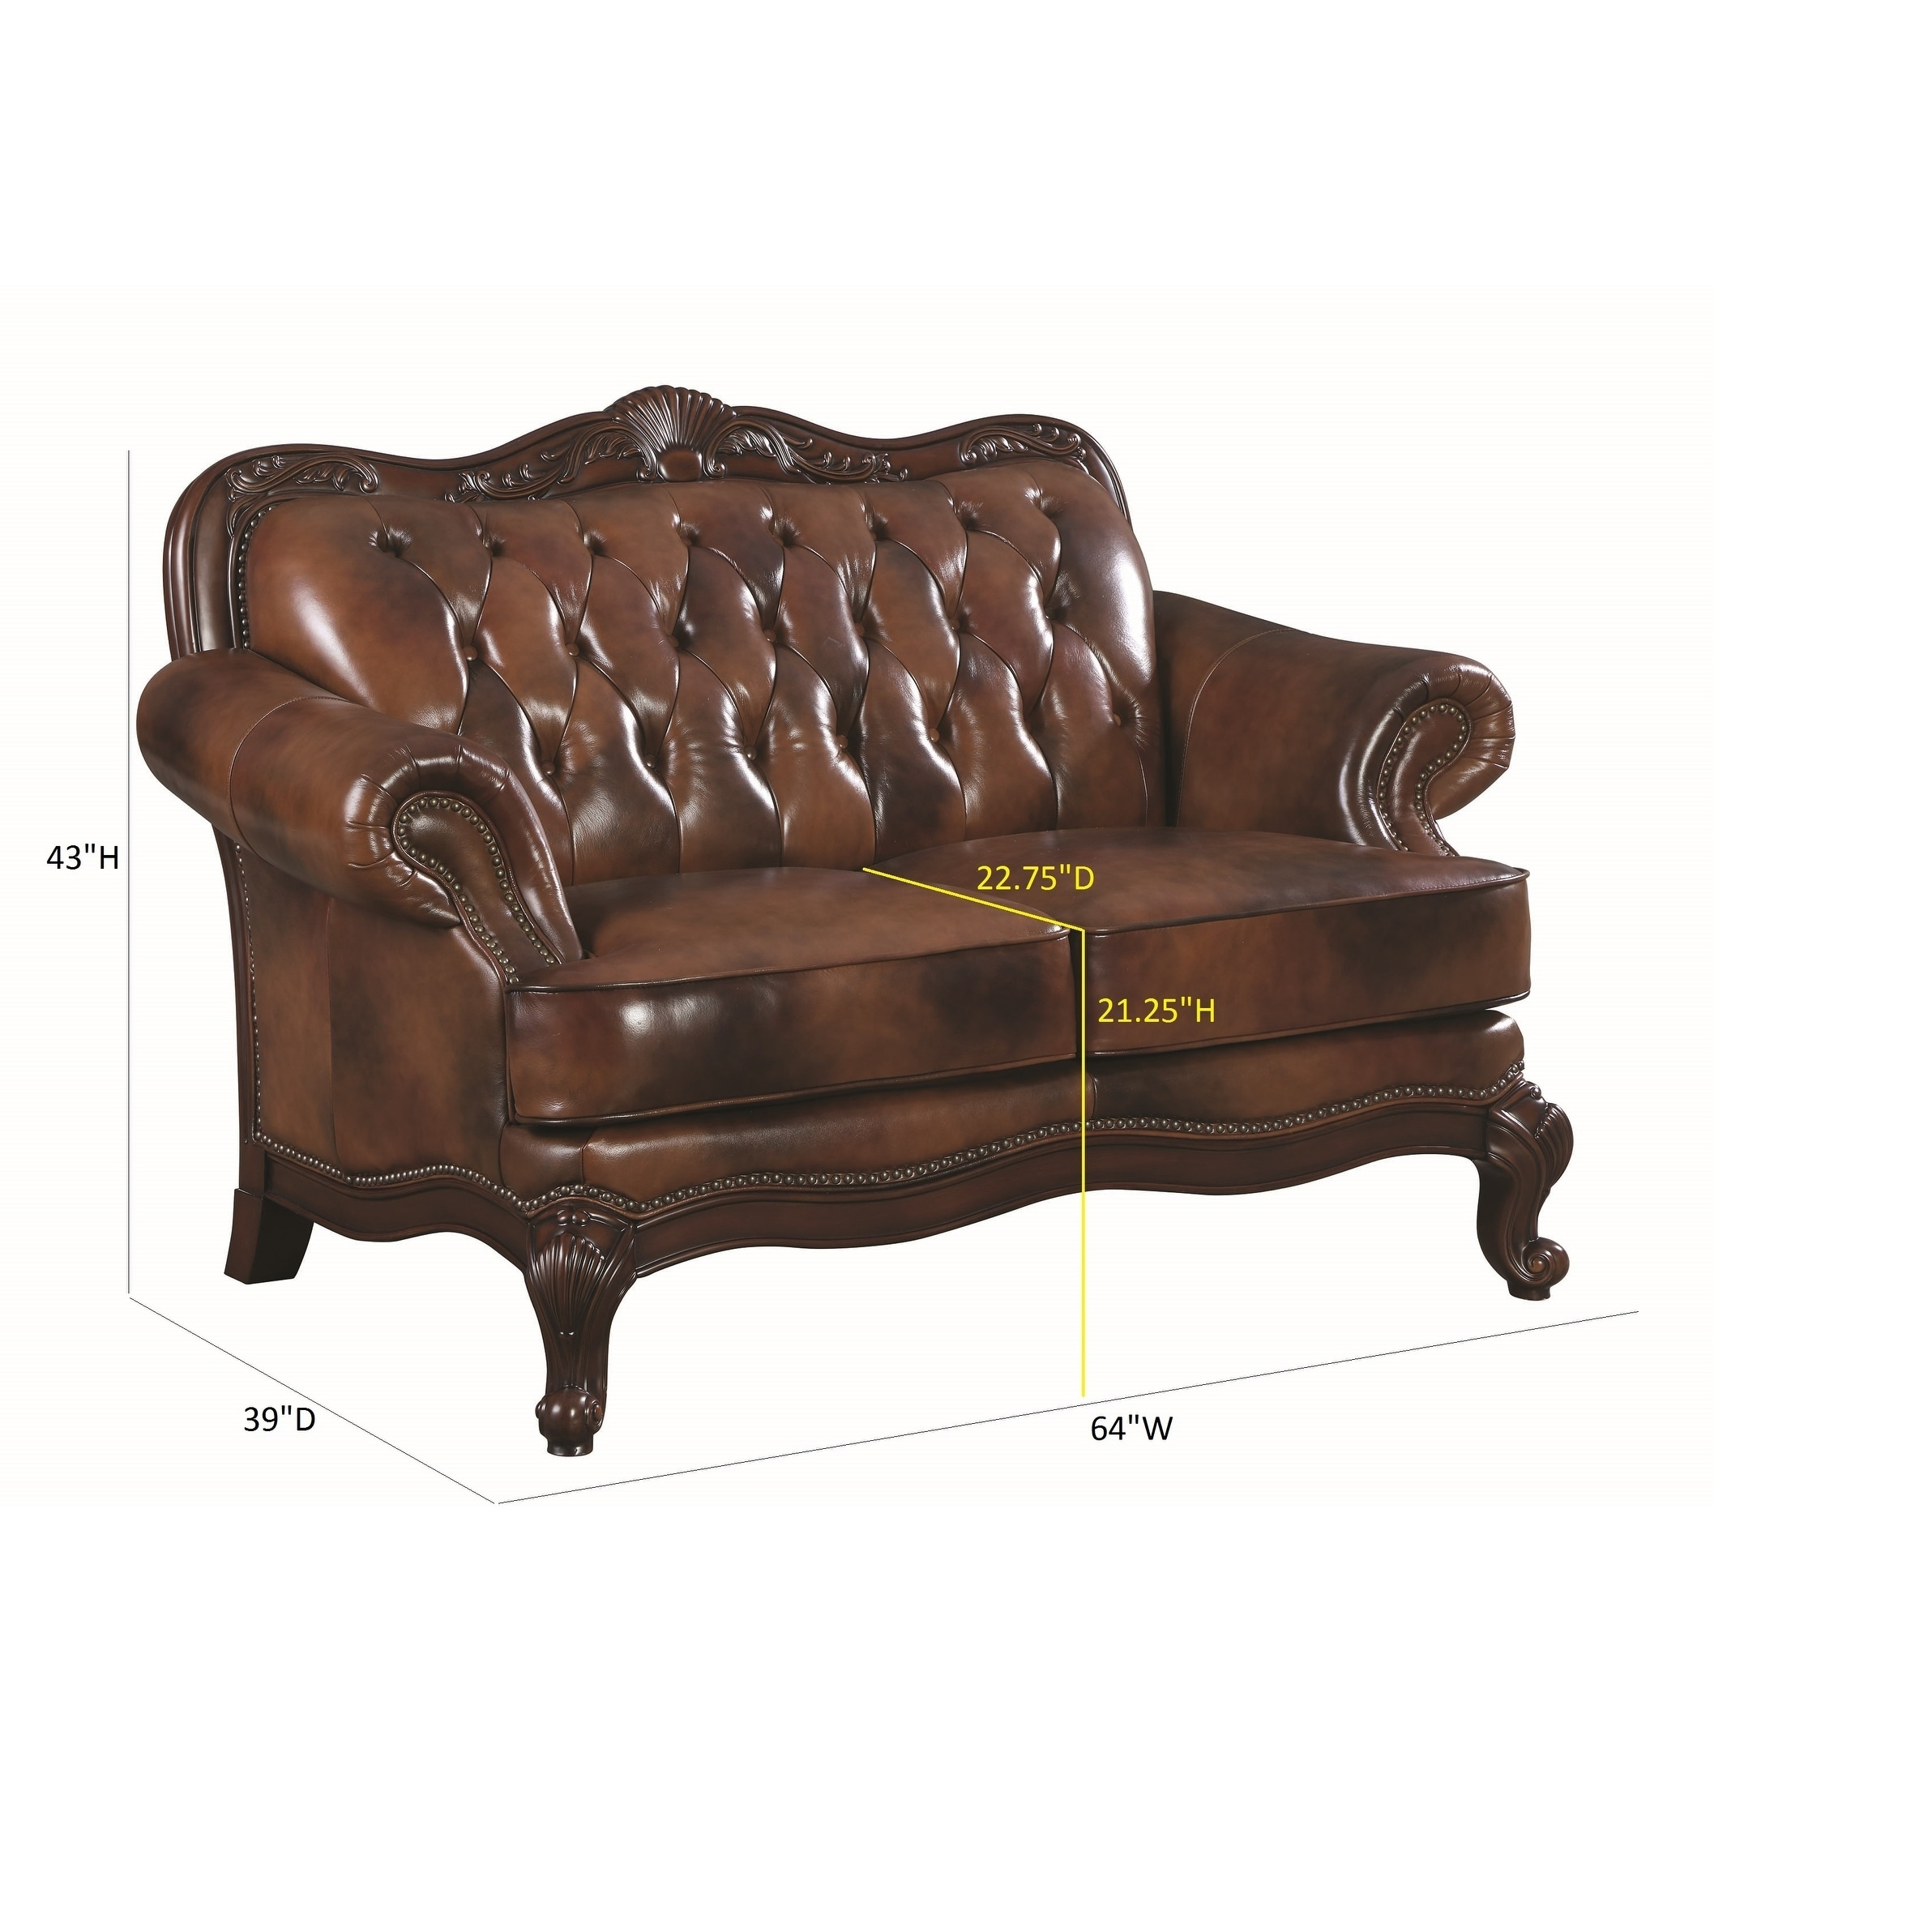 Coaster Company Brown Leather Tufted